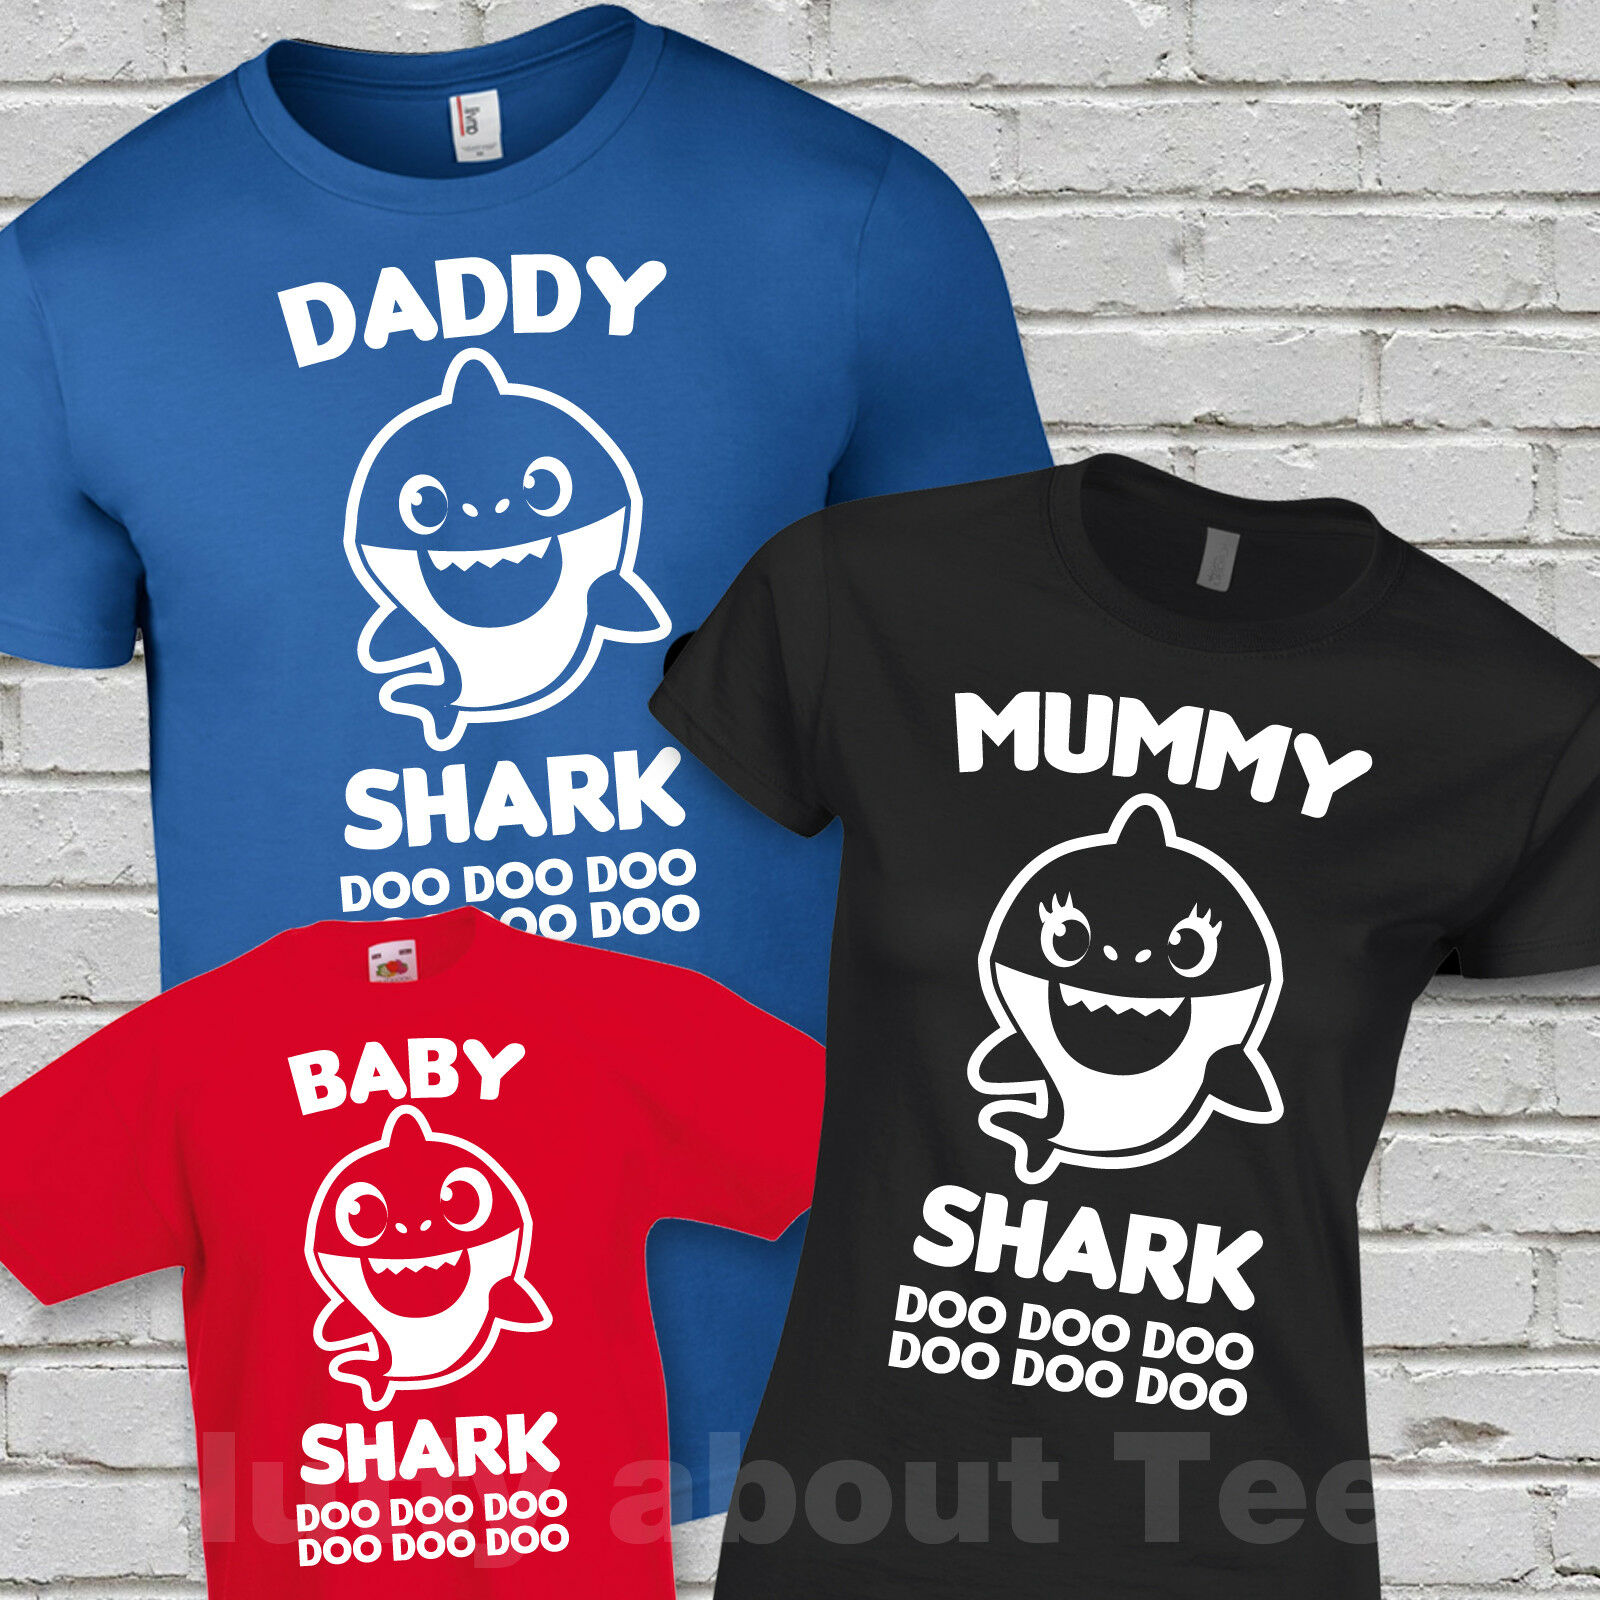 74d1f420 BABY SHARK DOO DOO T-SHIRT SONG MUMMY DADDY FAMILY MATCHING FUNNY CUTE  REDFunny free shipping Unisex Casual Tshirt top